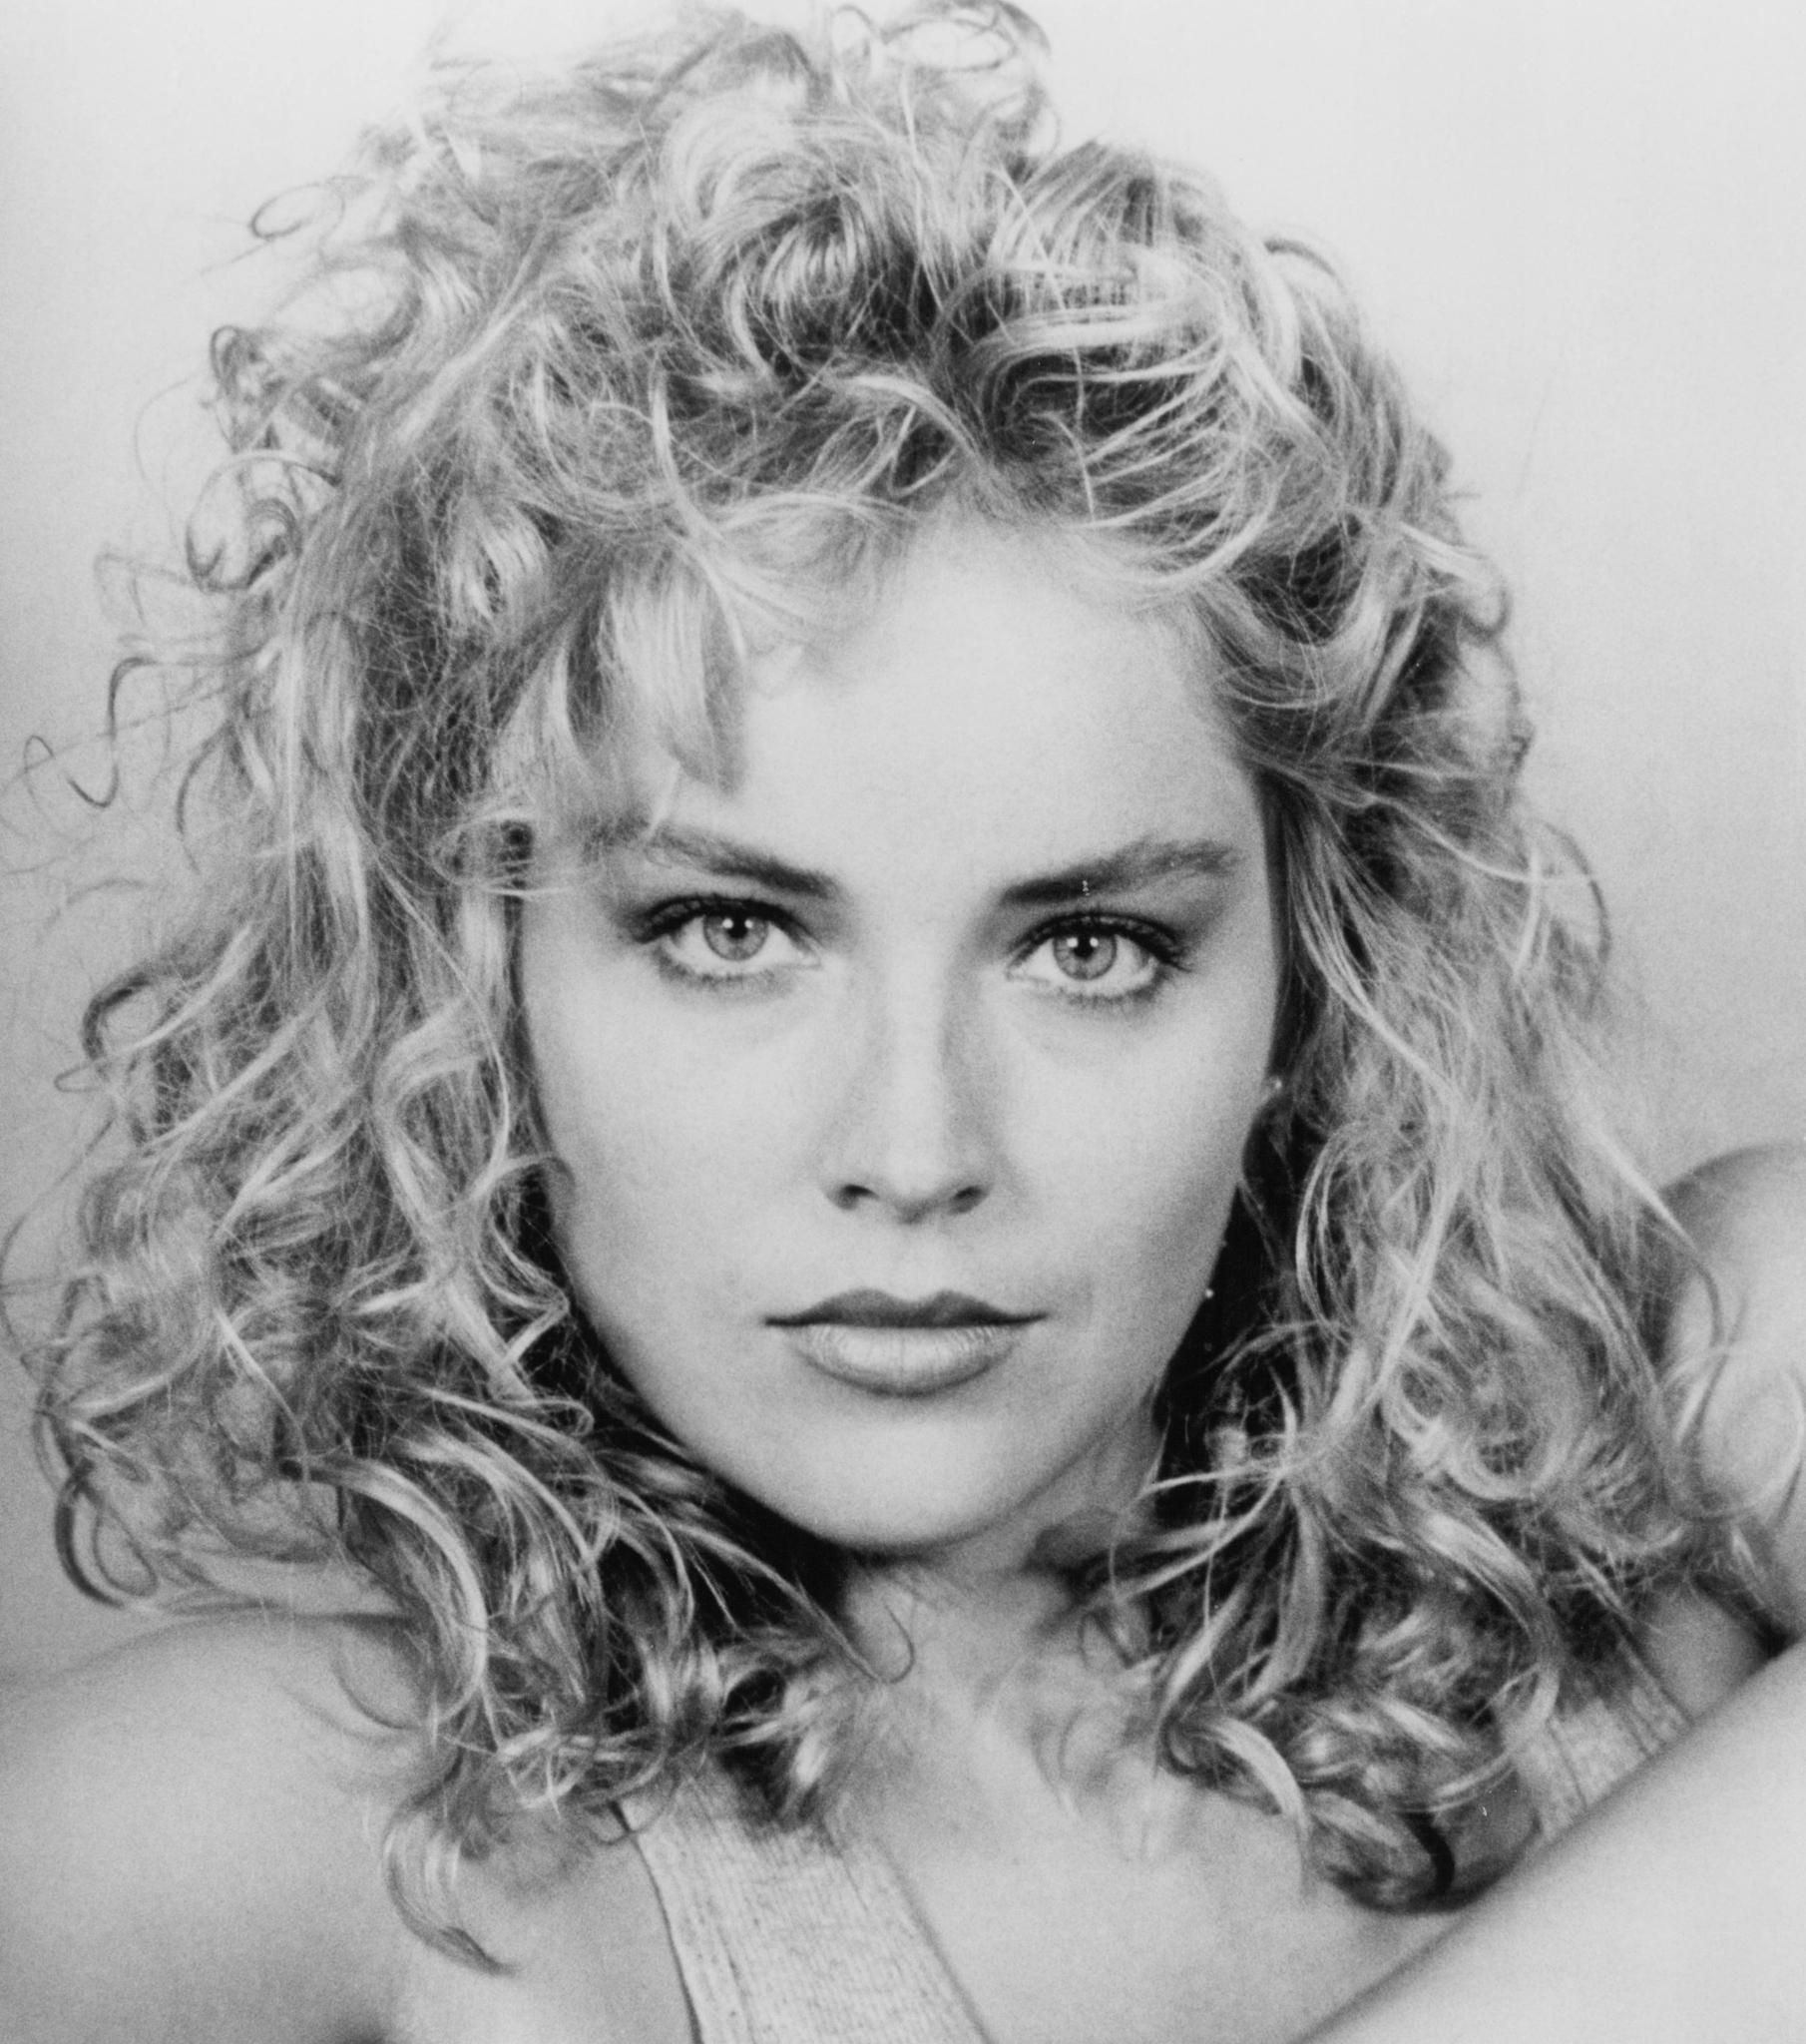 Sharon Stone Total Recall Pop Culture Young